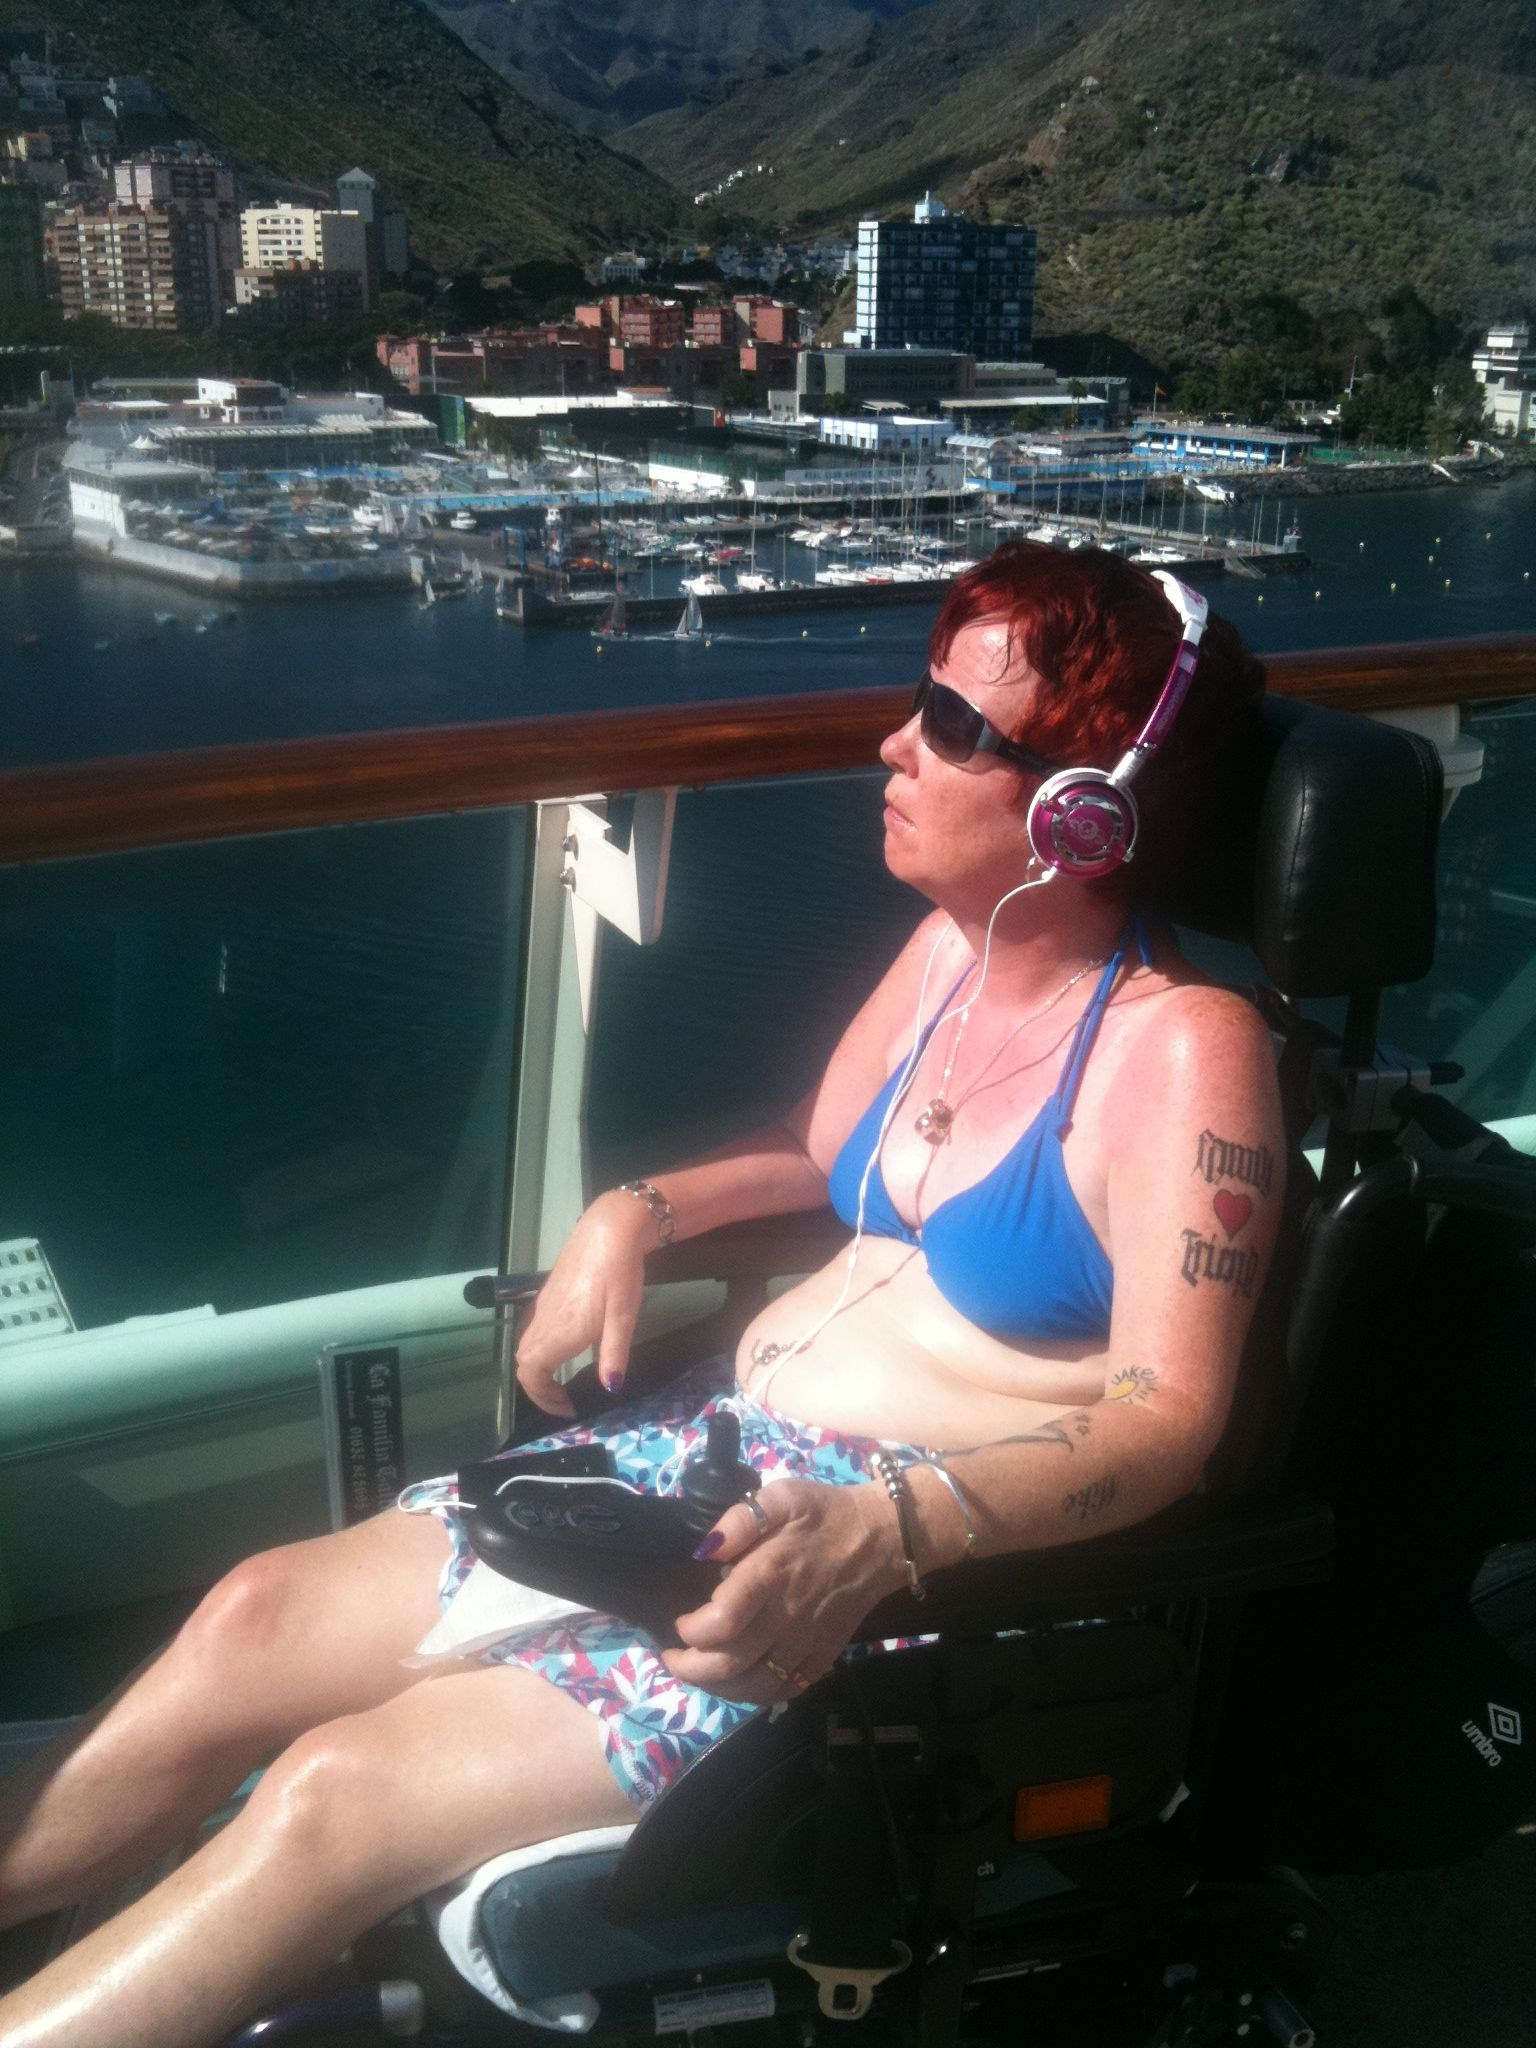 Carol   Sunning Herself   Canary Islands Cruise   October 2010